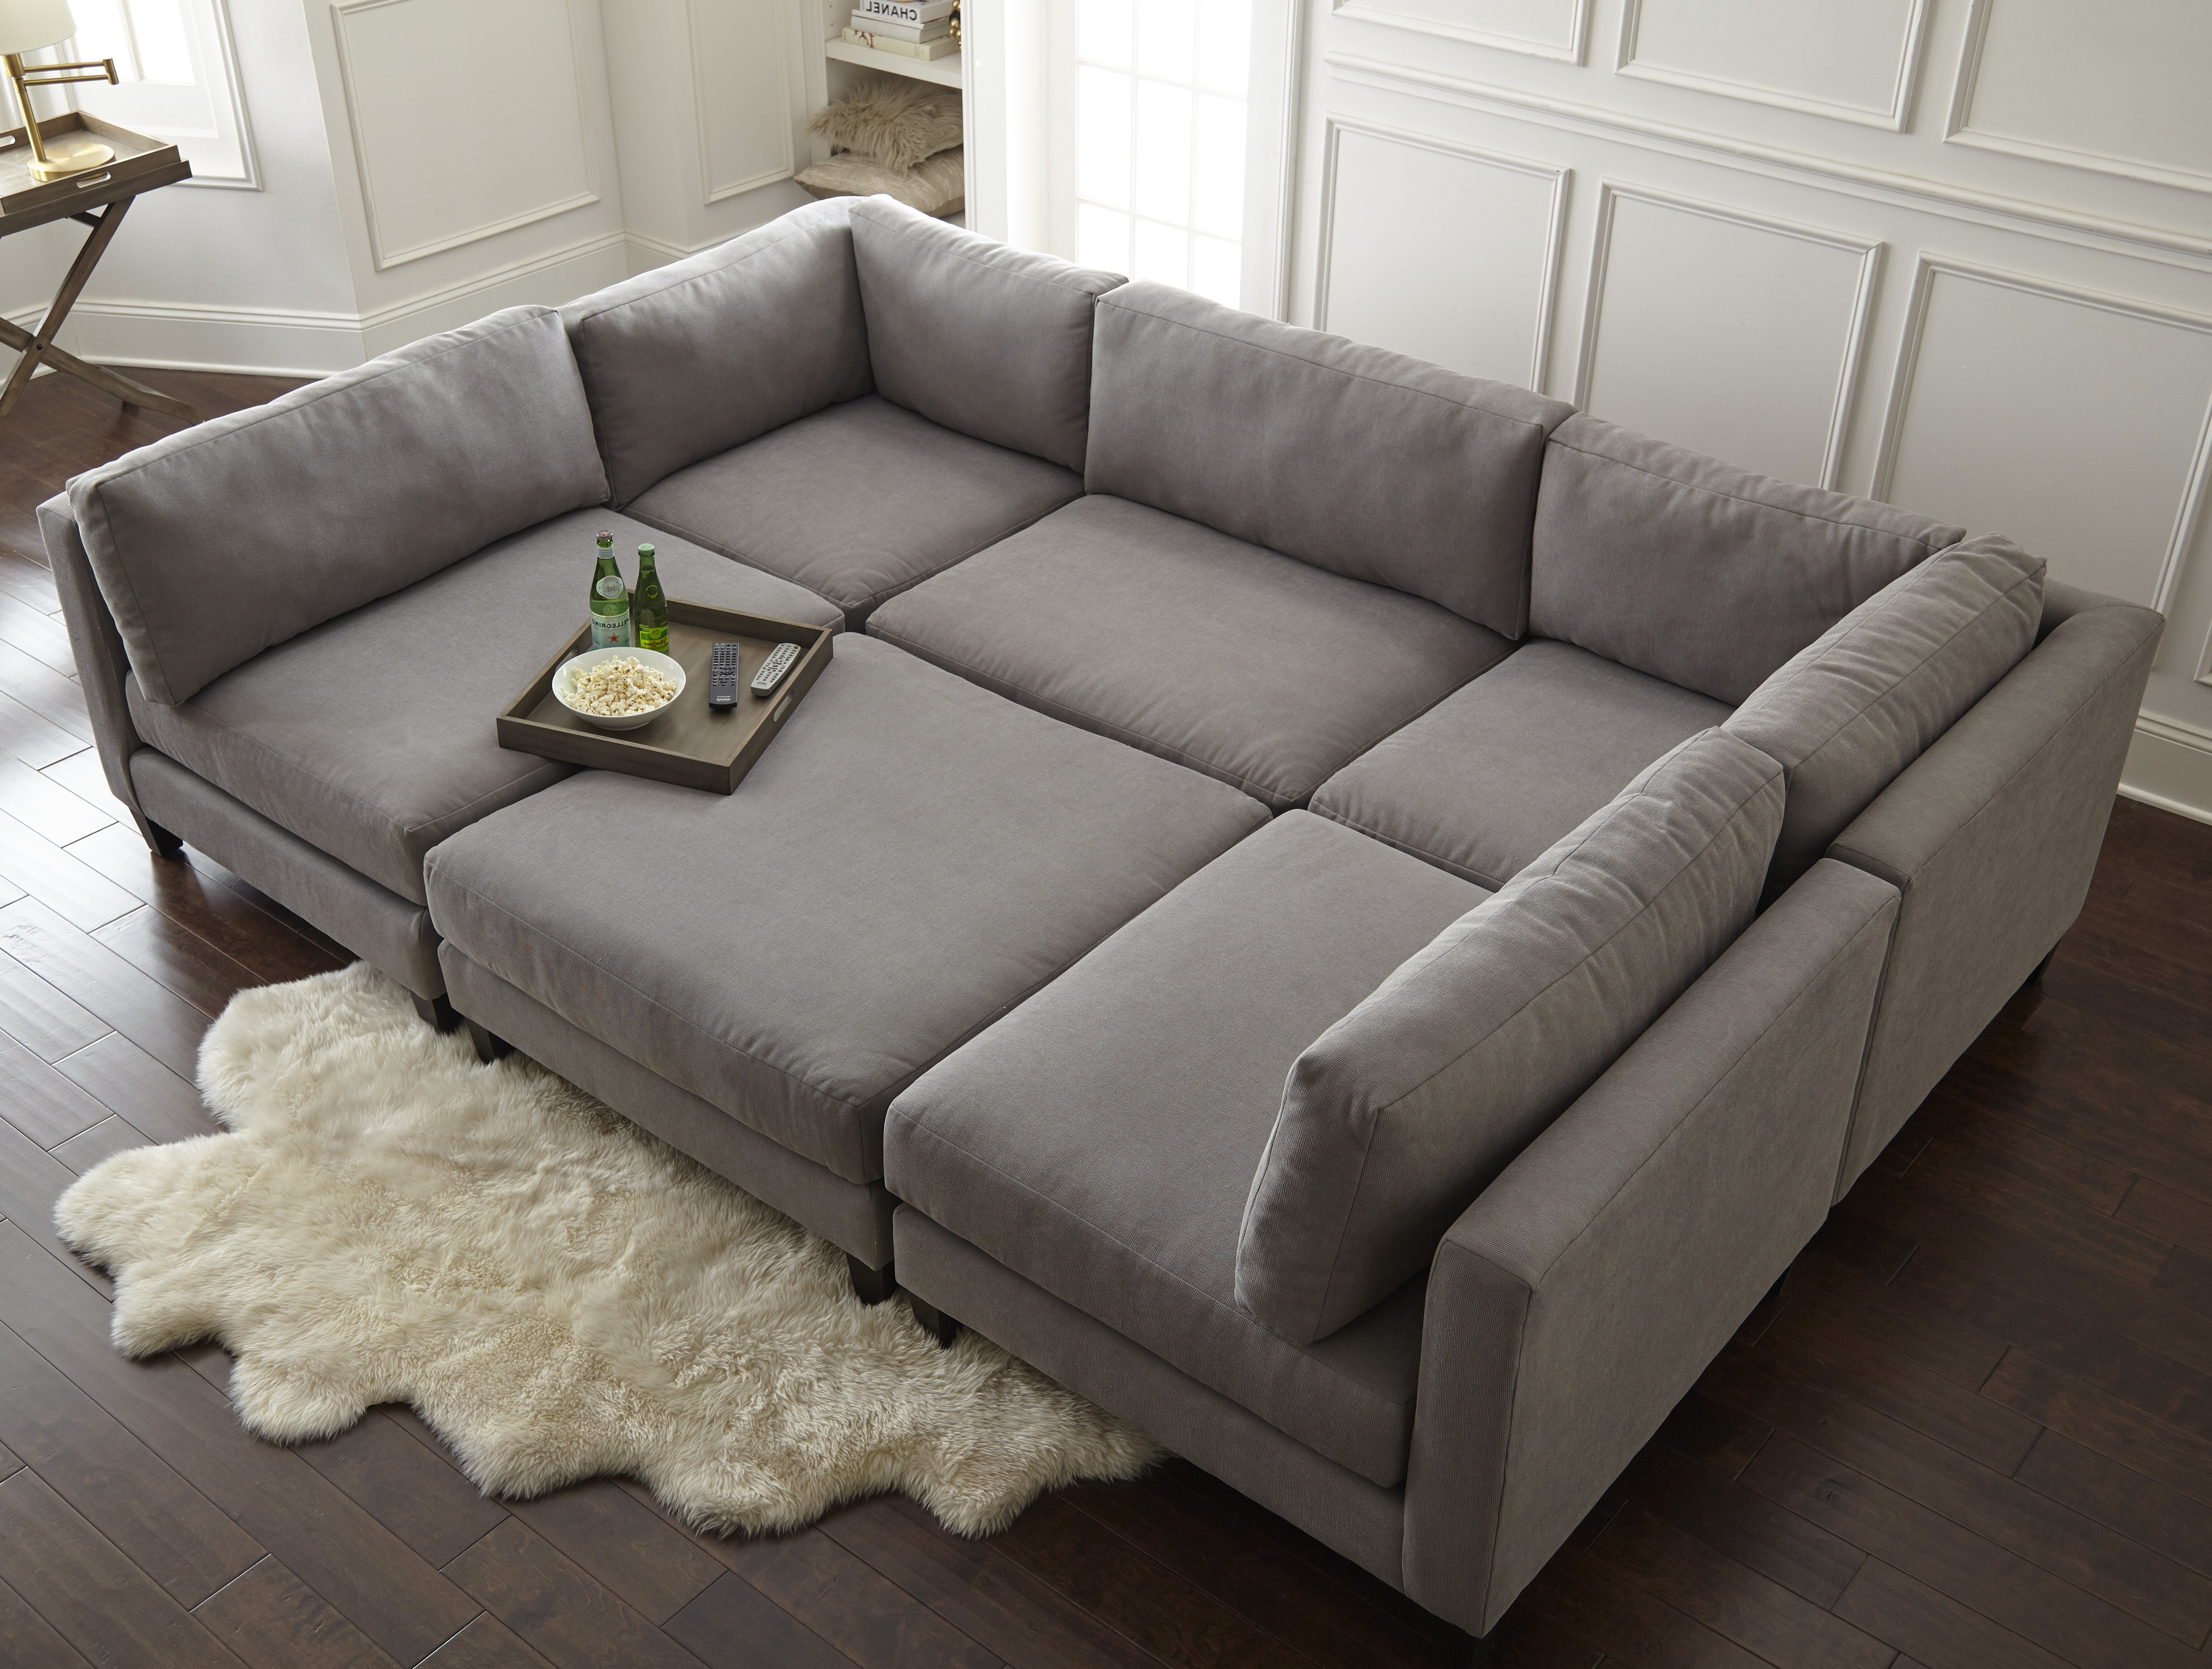 Wayfair Inside 2019 Individual Piece Sectional Sofas (View 4 of 20)